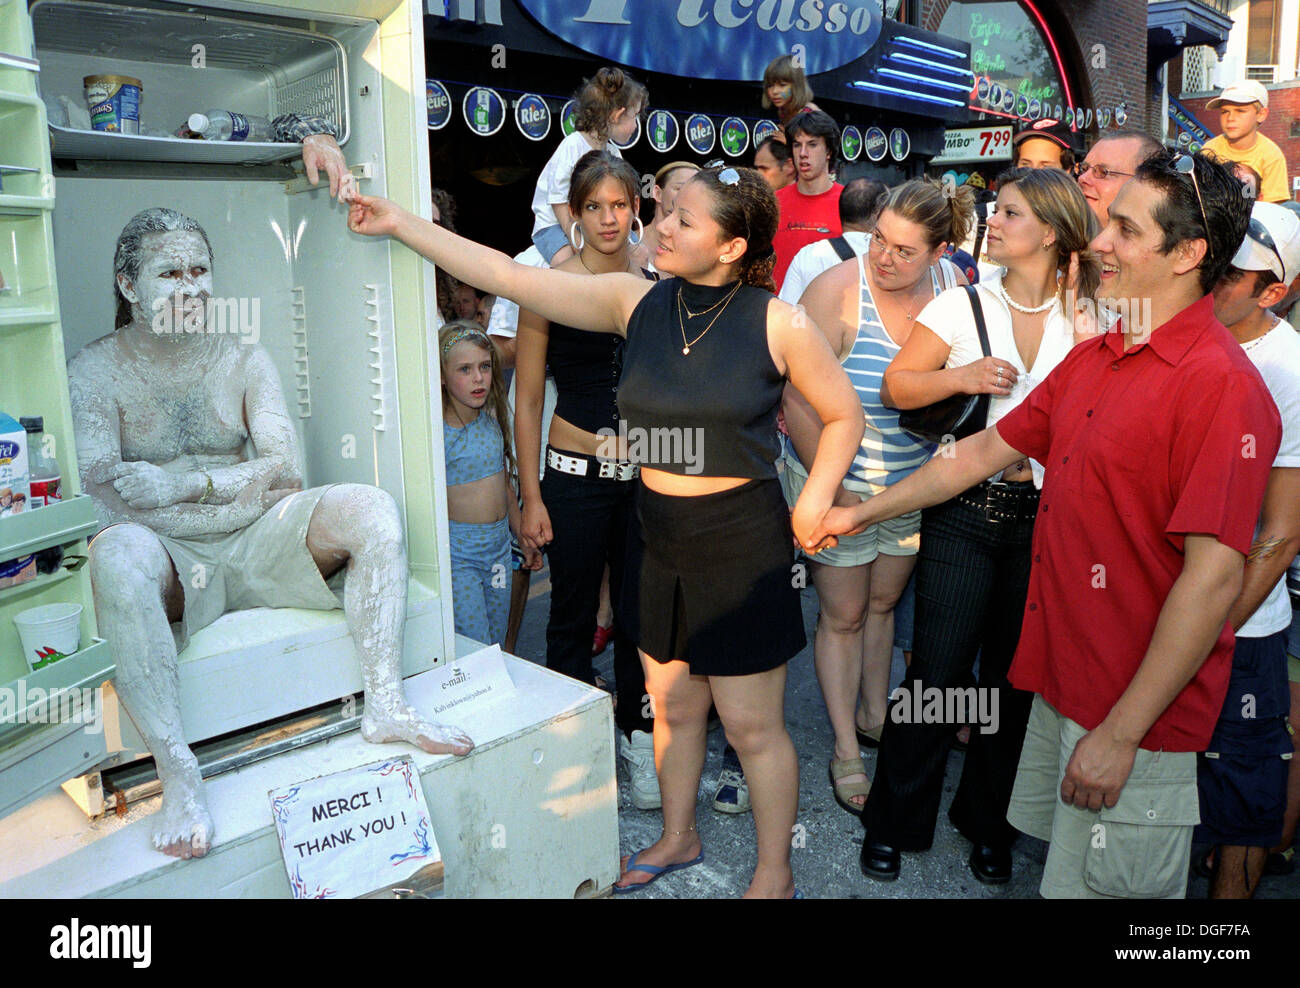 man-in-refrigerator-human-statue-performing-in-downtown-montreal-during-DGF7FA.jpg